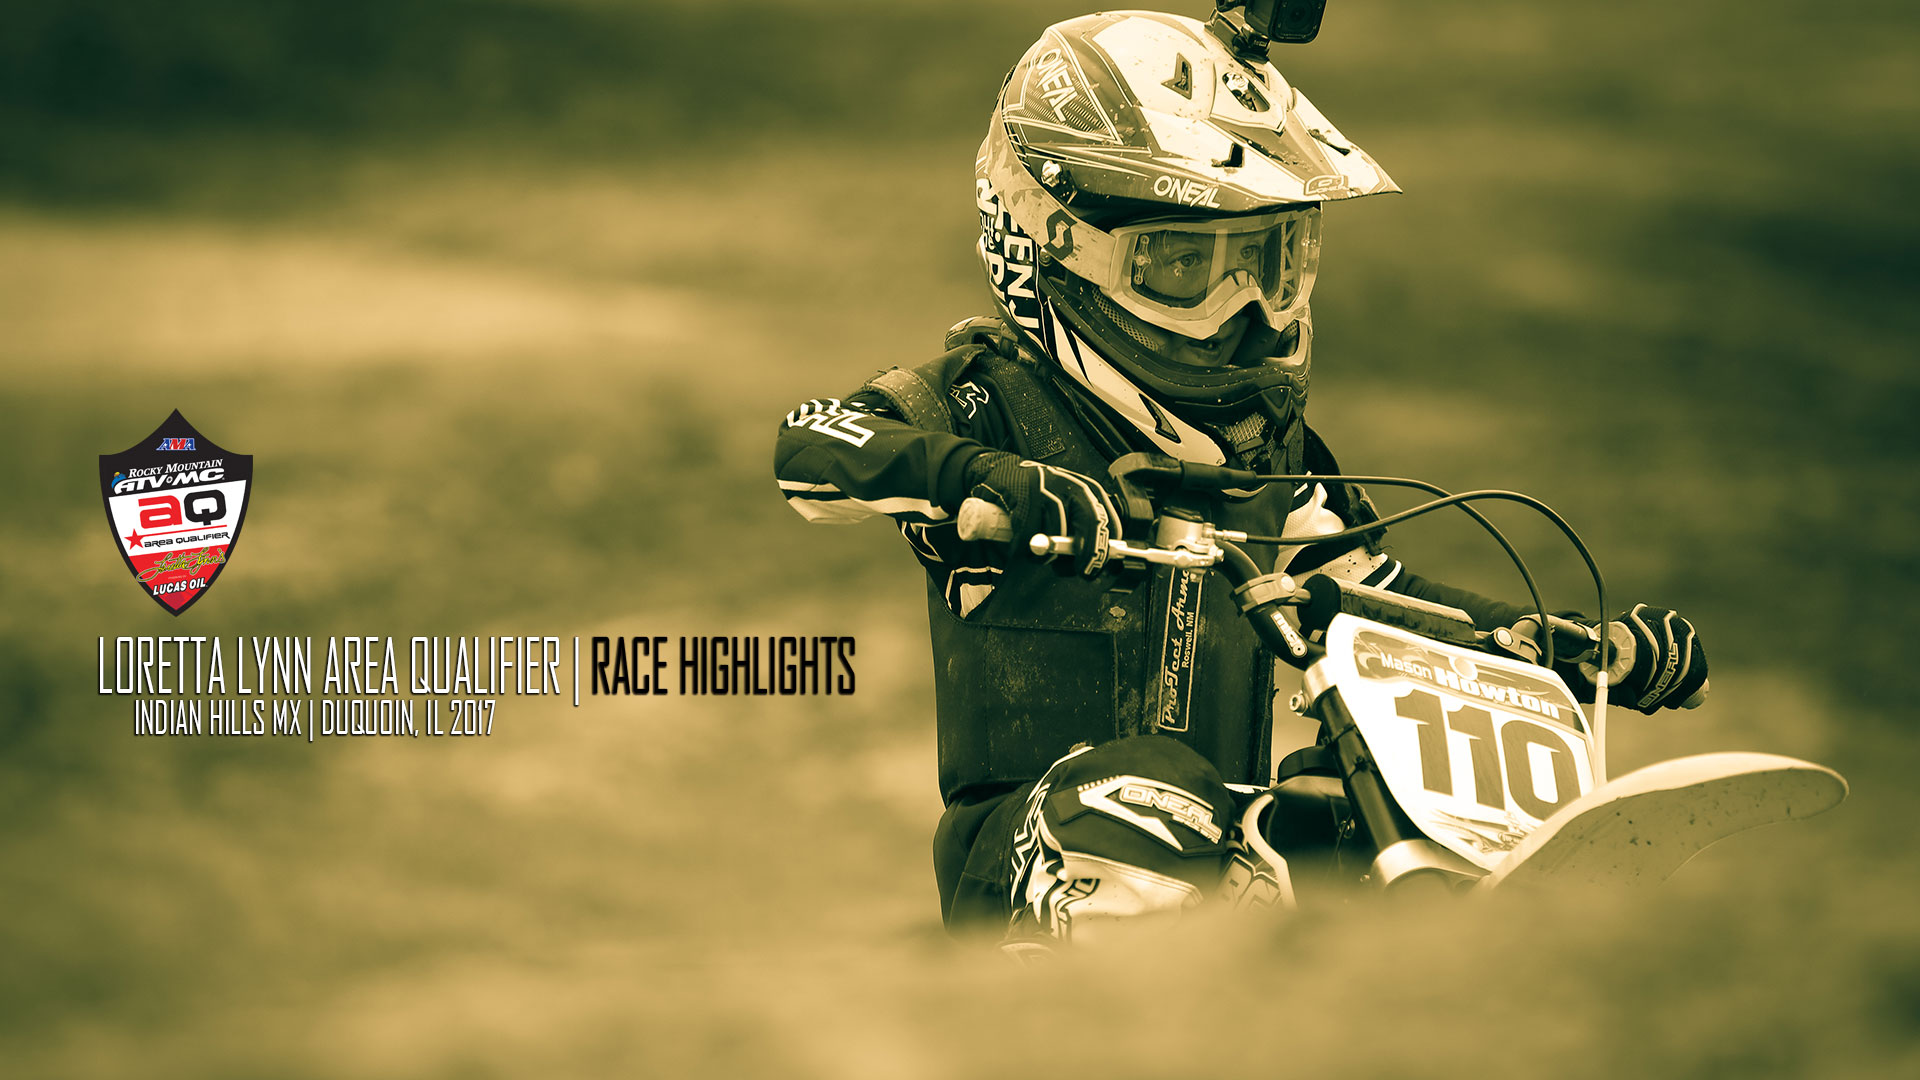 Road to Loretta's Indian Hills MX | Race Highlights 2017